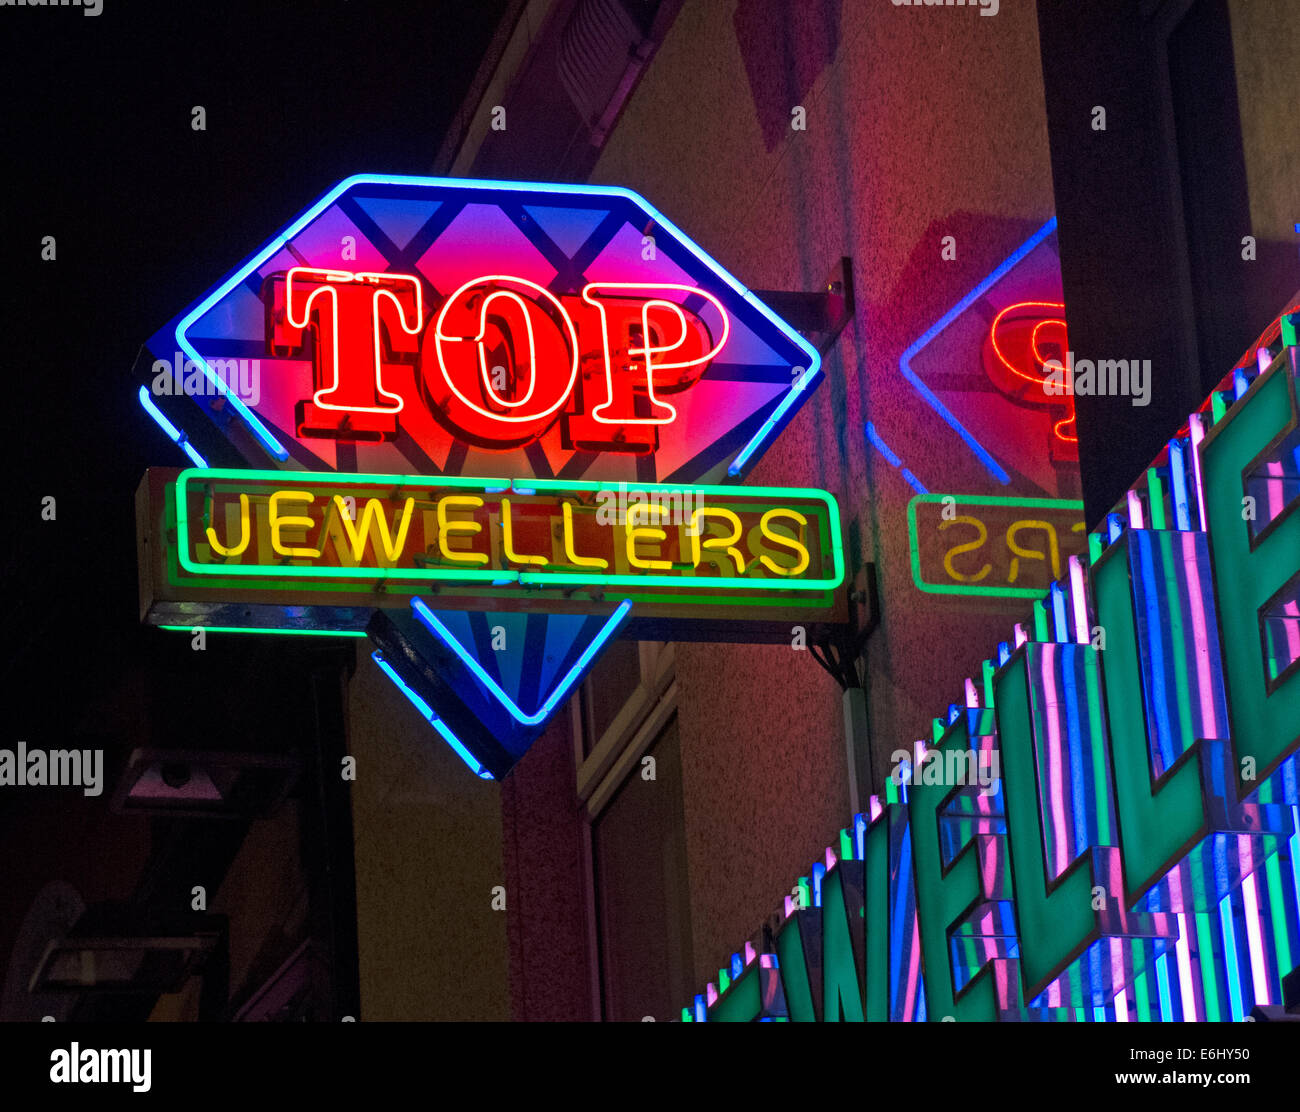 Jewellers,Jeweller,dusk,evening,dark,neon,sign,colorful,colourful,asian,pakistan,afghan,gold,silver,bangles,ring,rings,Manchester,City,Centre,England at Night bright,Gotonysmith,Buy Pictures of,Buy Images Of